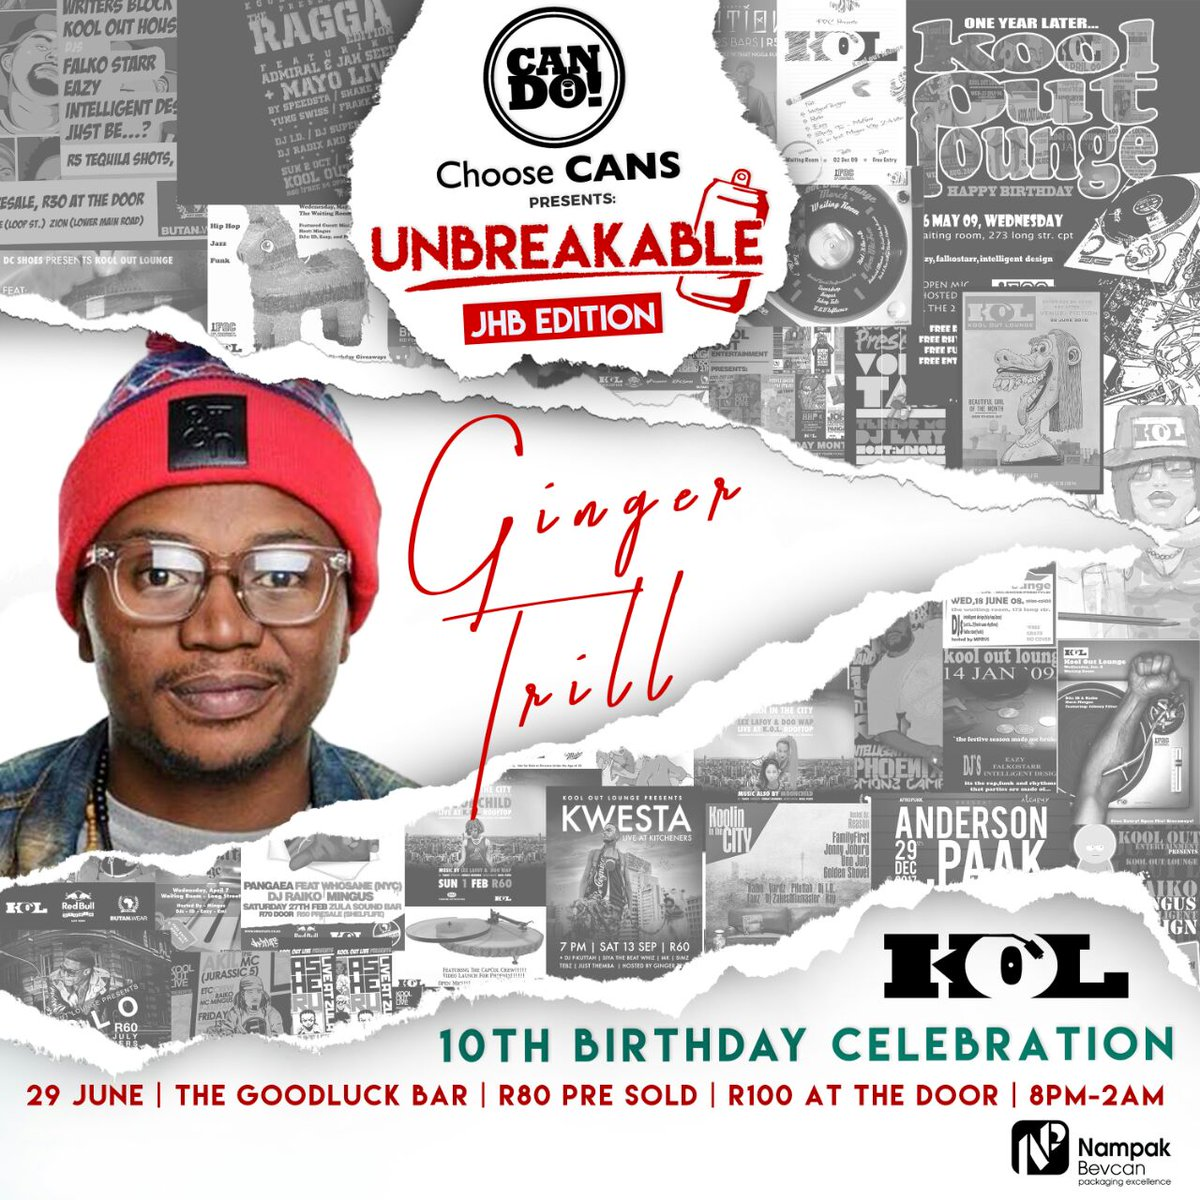 e48d556e819 ... turn up king  espiquet at our 10th Birthday Celebration on the  29 06 2108 at The Good Luck Bar. Tickets available on Quicket here   http   qkt.io 0QQx30 ...